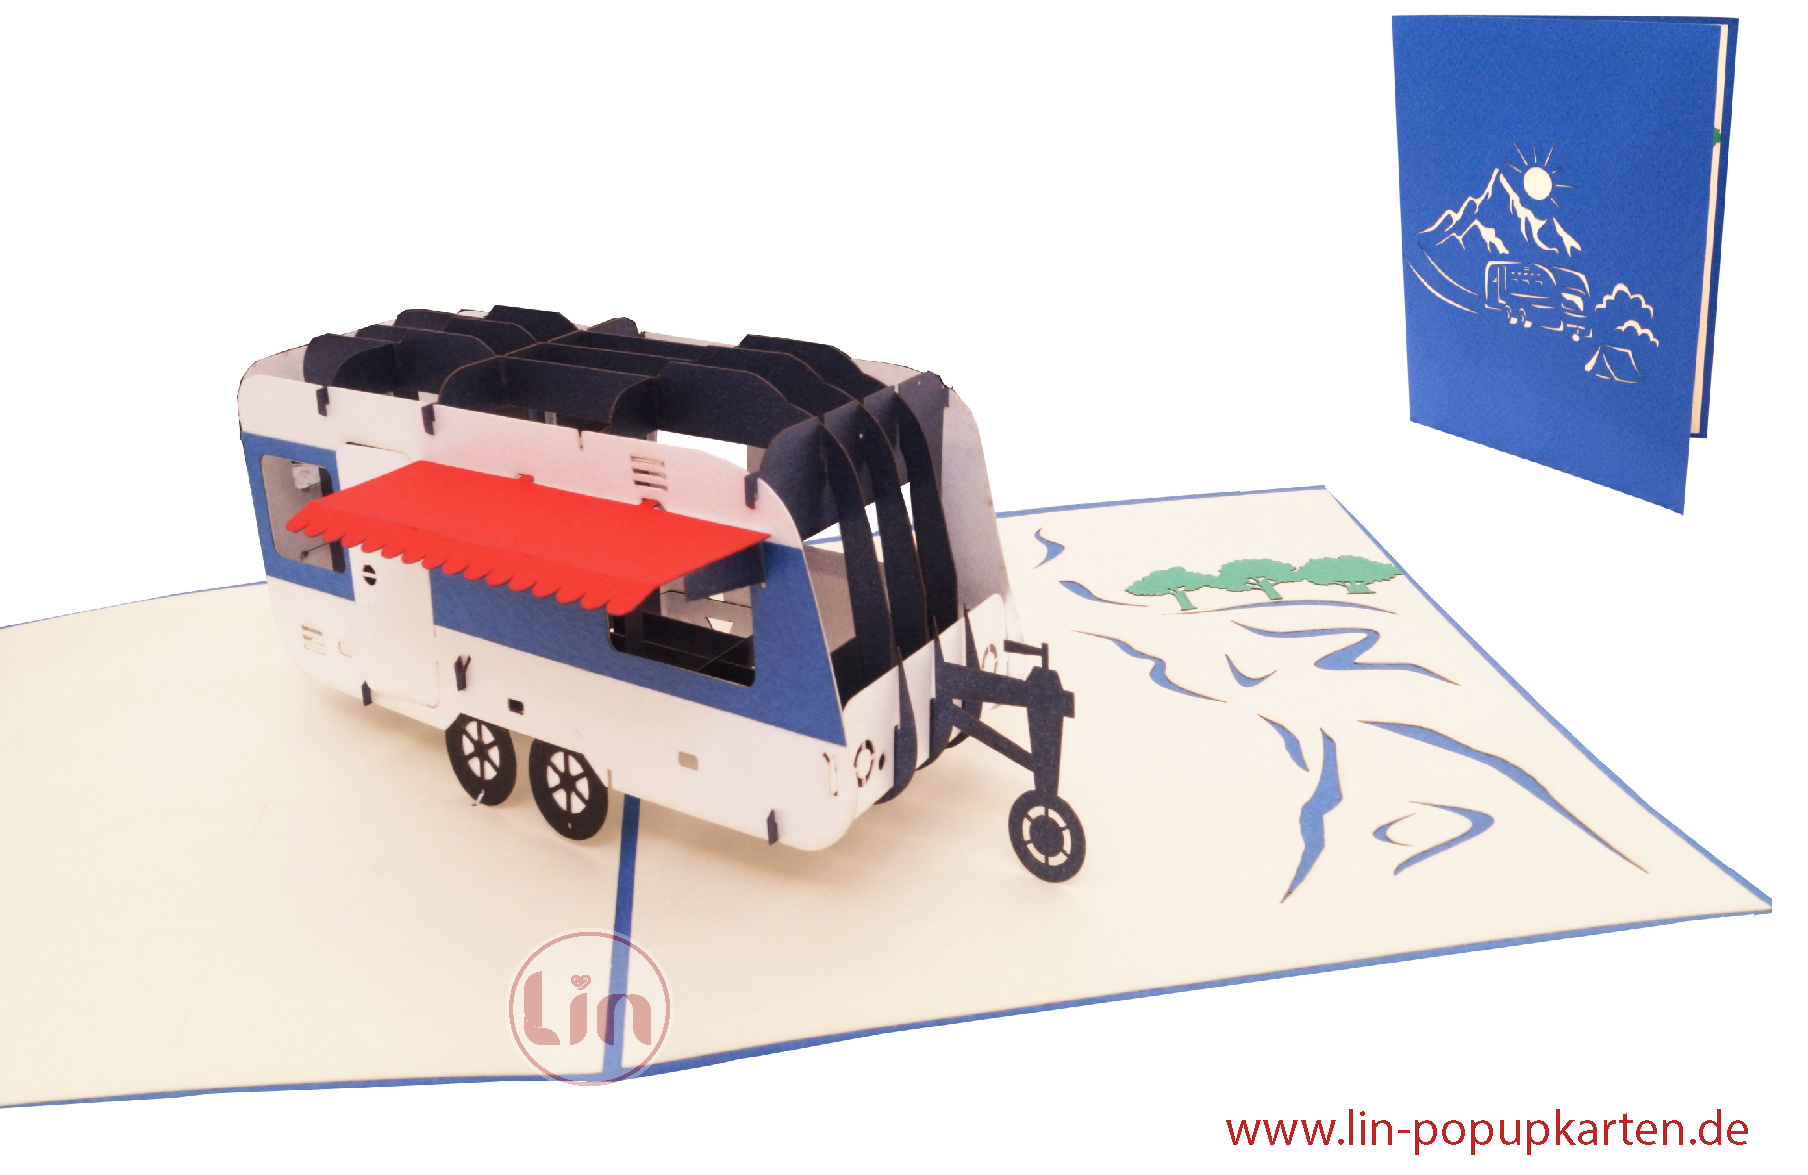 Pop Up Card Caravan Camper, 3D Greeting Cards Retirement Card, Farewell Card, Retirement Card, Birthday Cards, Travel Gift Certificate Vacation, Caravan, N346  - Copy